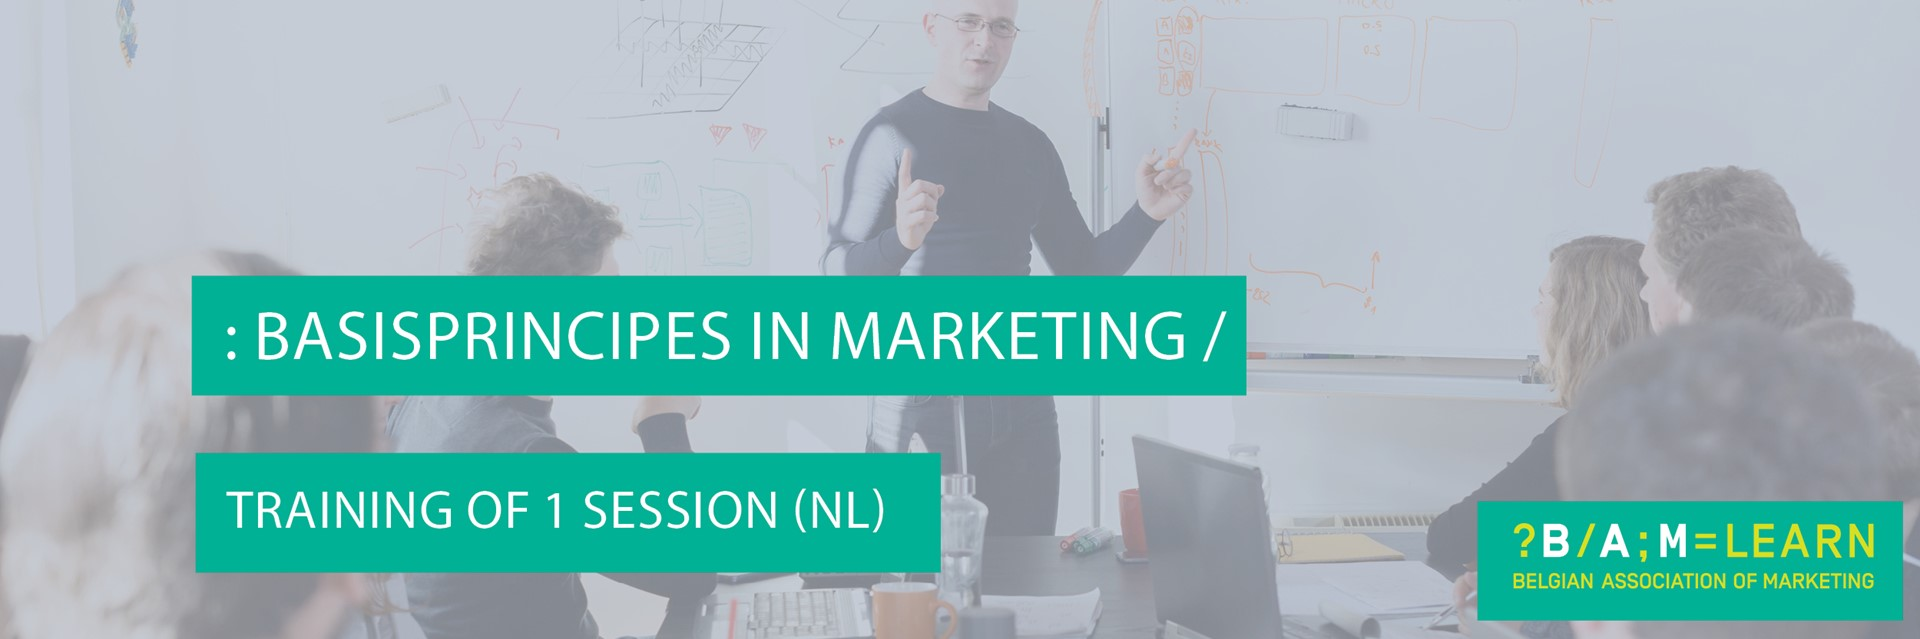 discover_sessie_basisprincipes in marketing